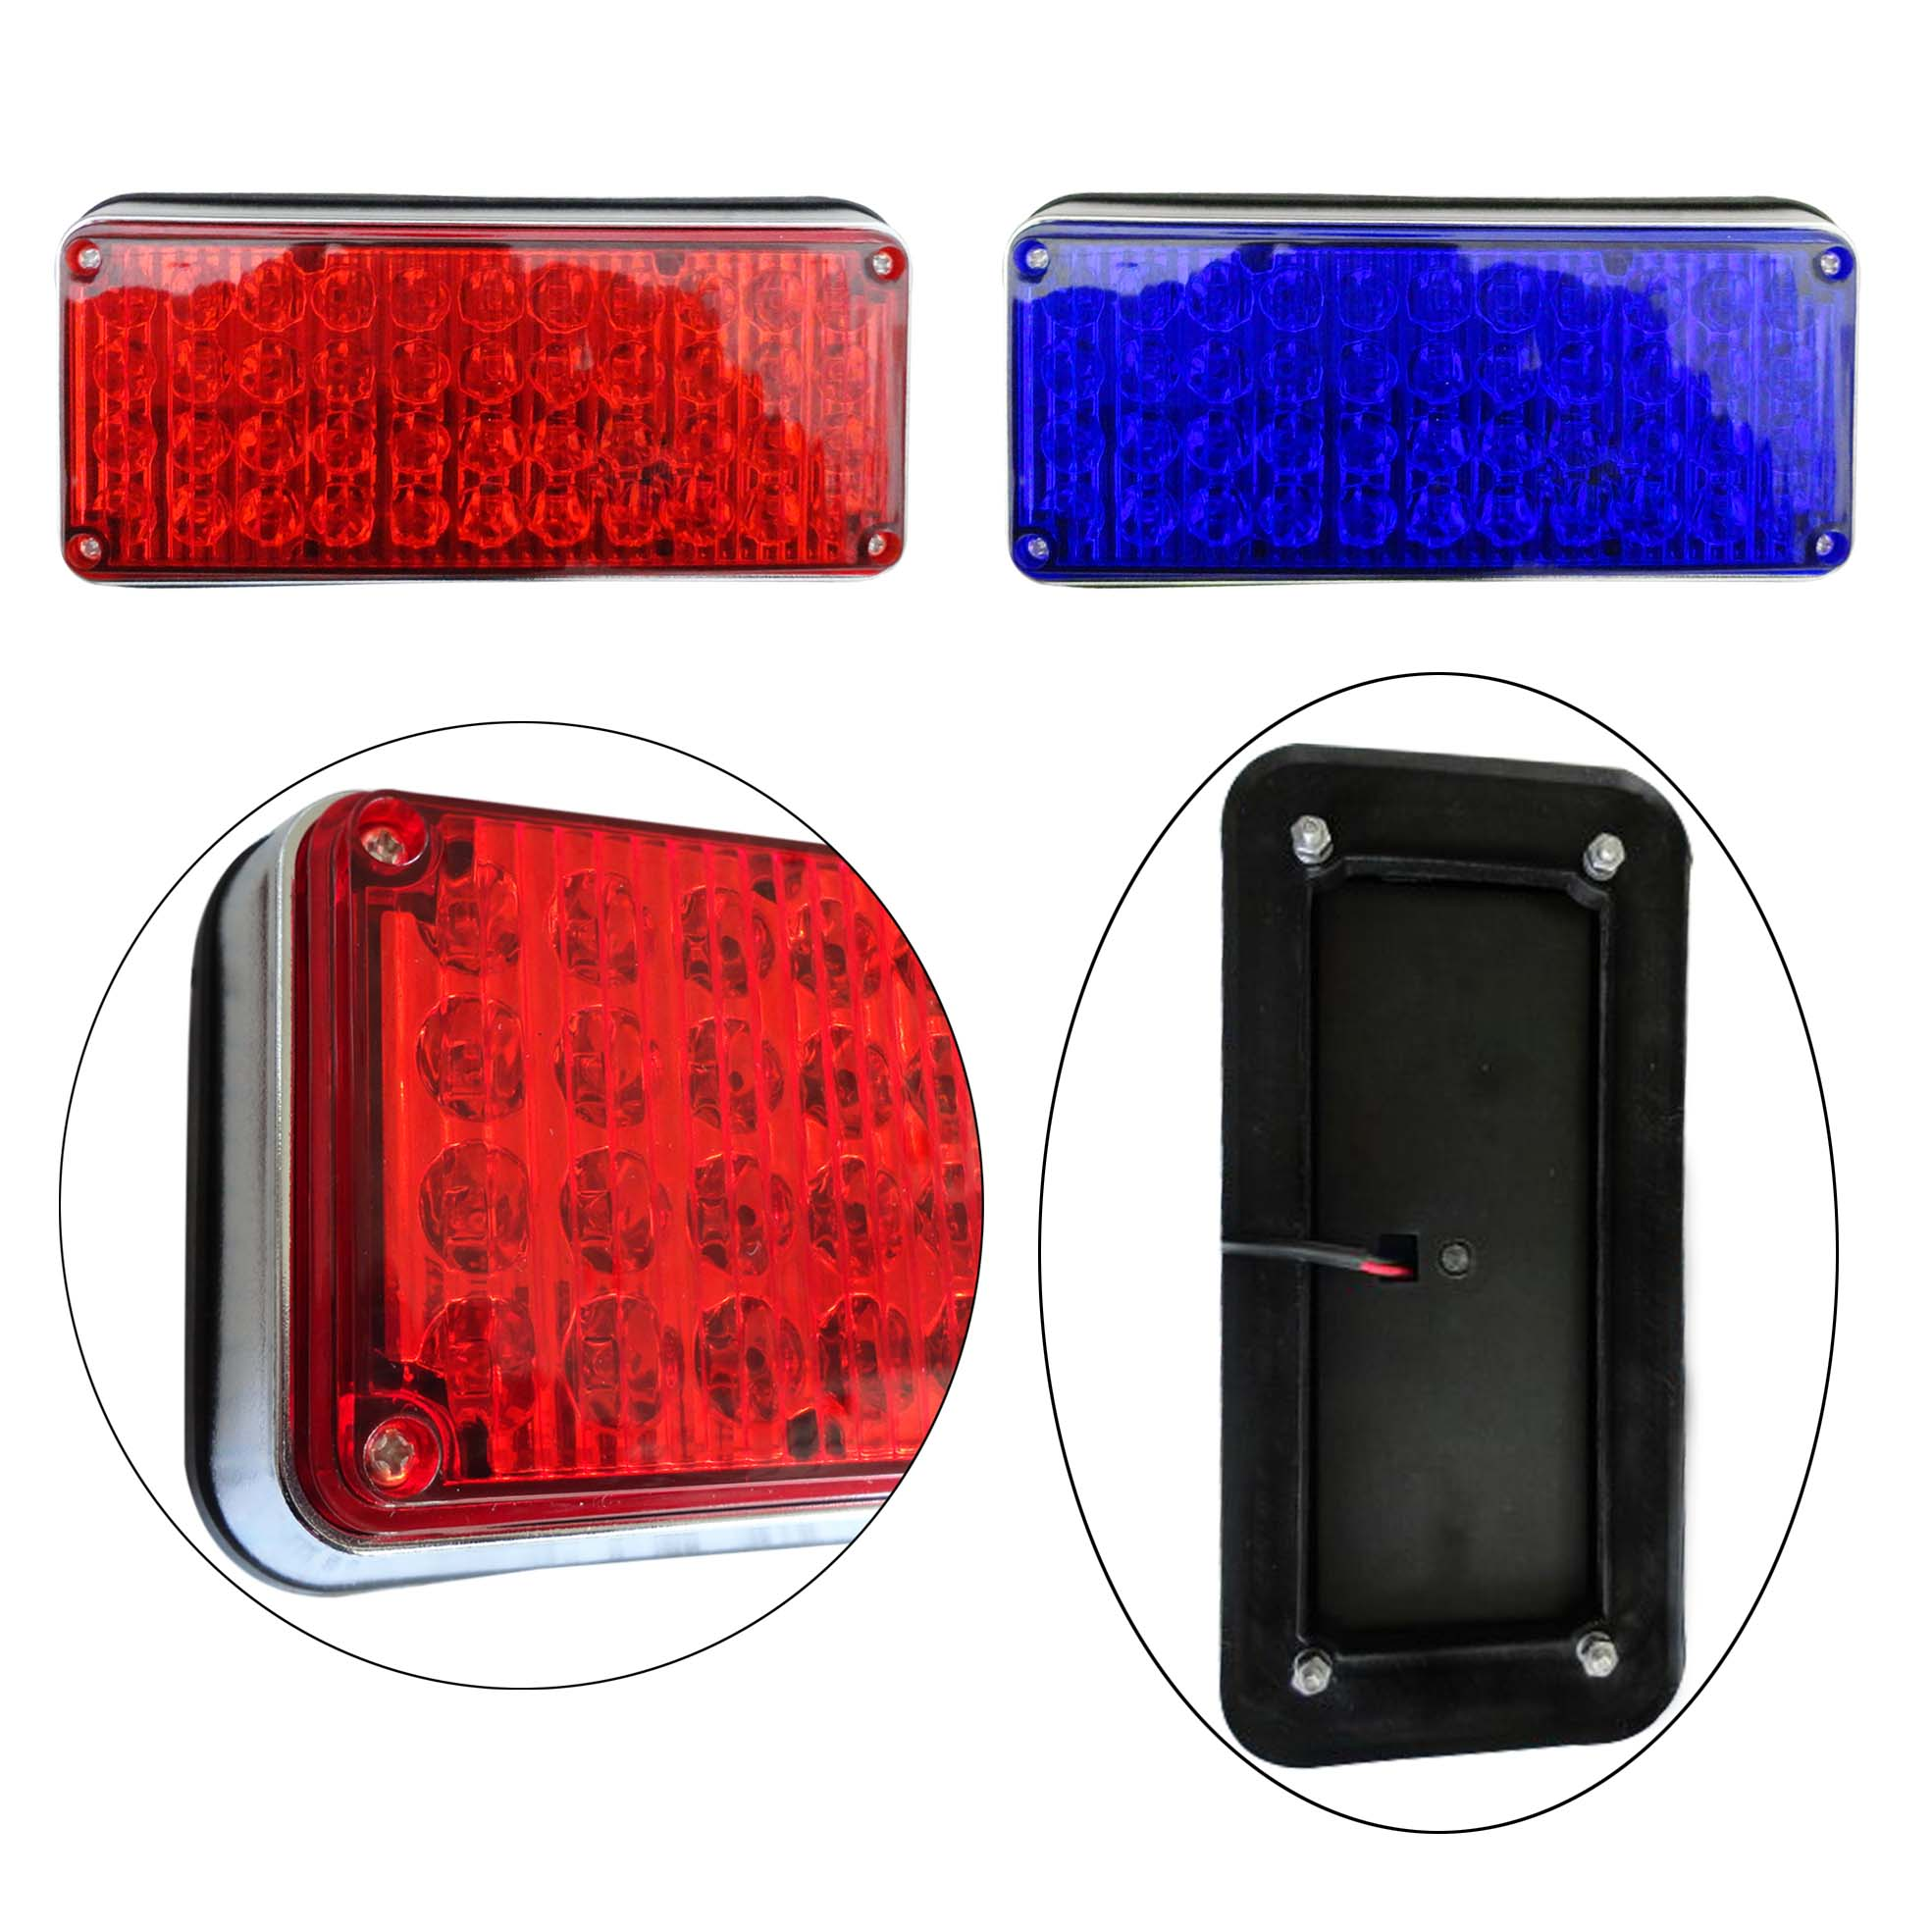 1x 12v 24v led flashing strobe lights lights  for ambulance pumper engines lamps police patrol Perimeter light 198x90x38mm 738-in Car Light Assembly from Automobiles & Motorcycles    3